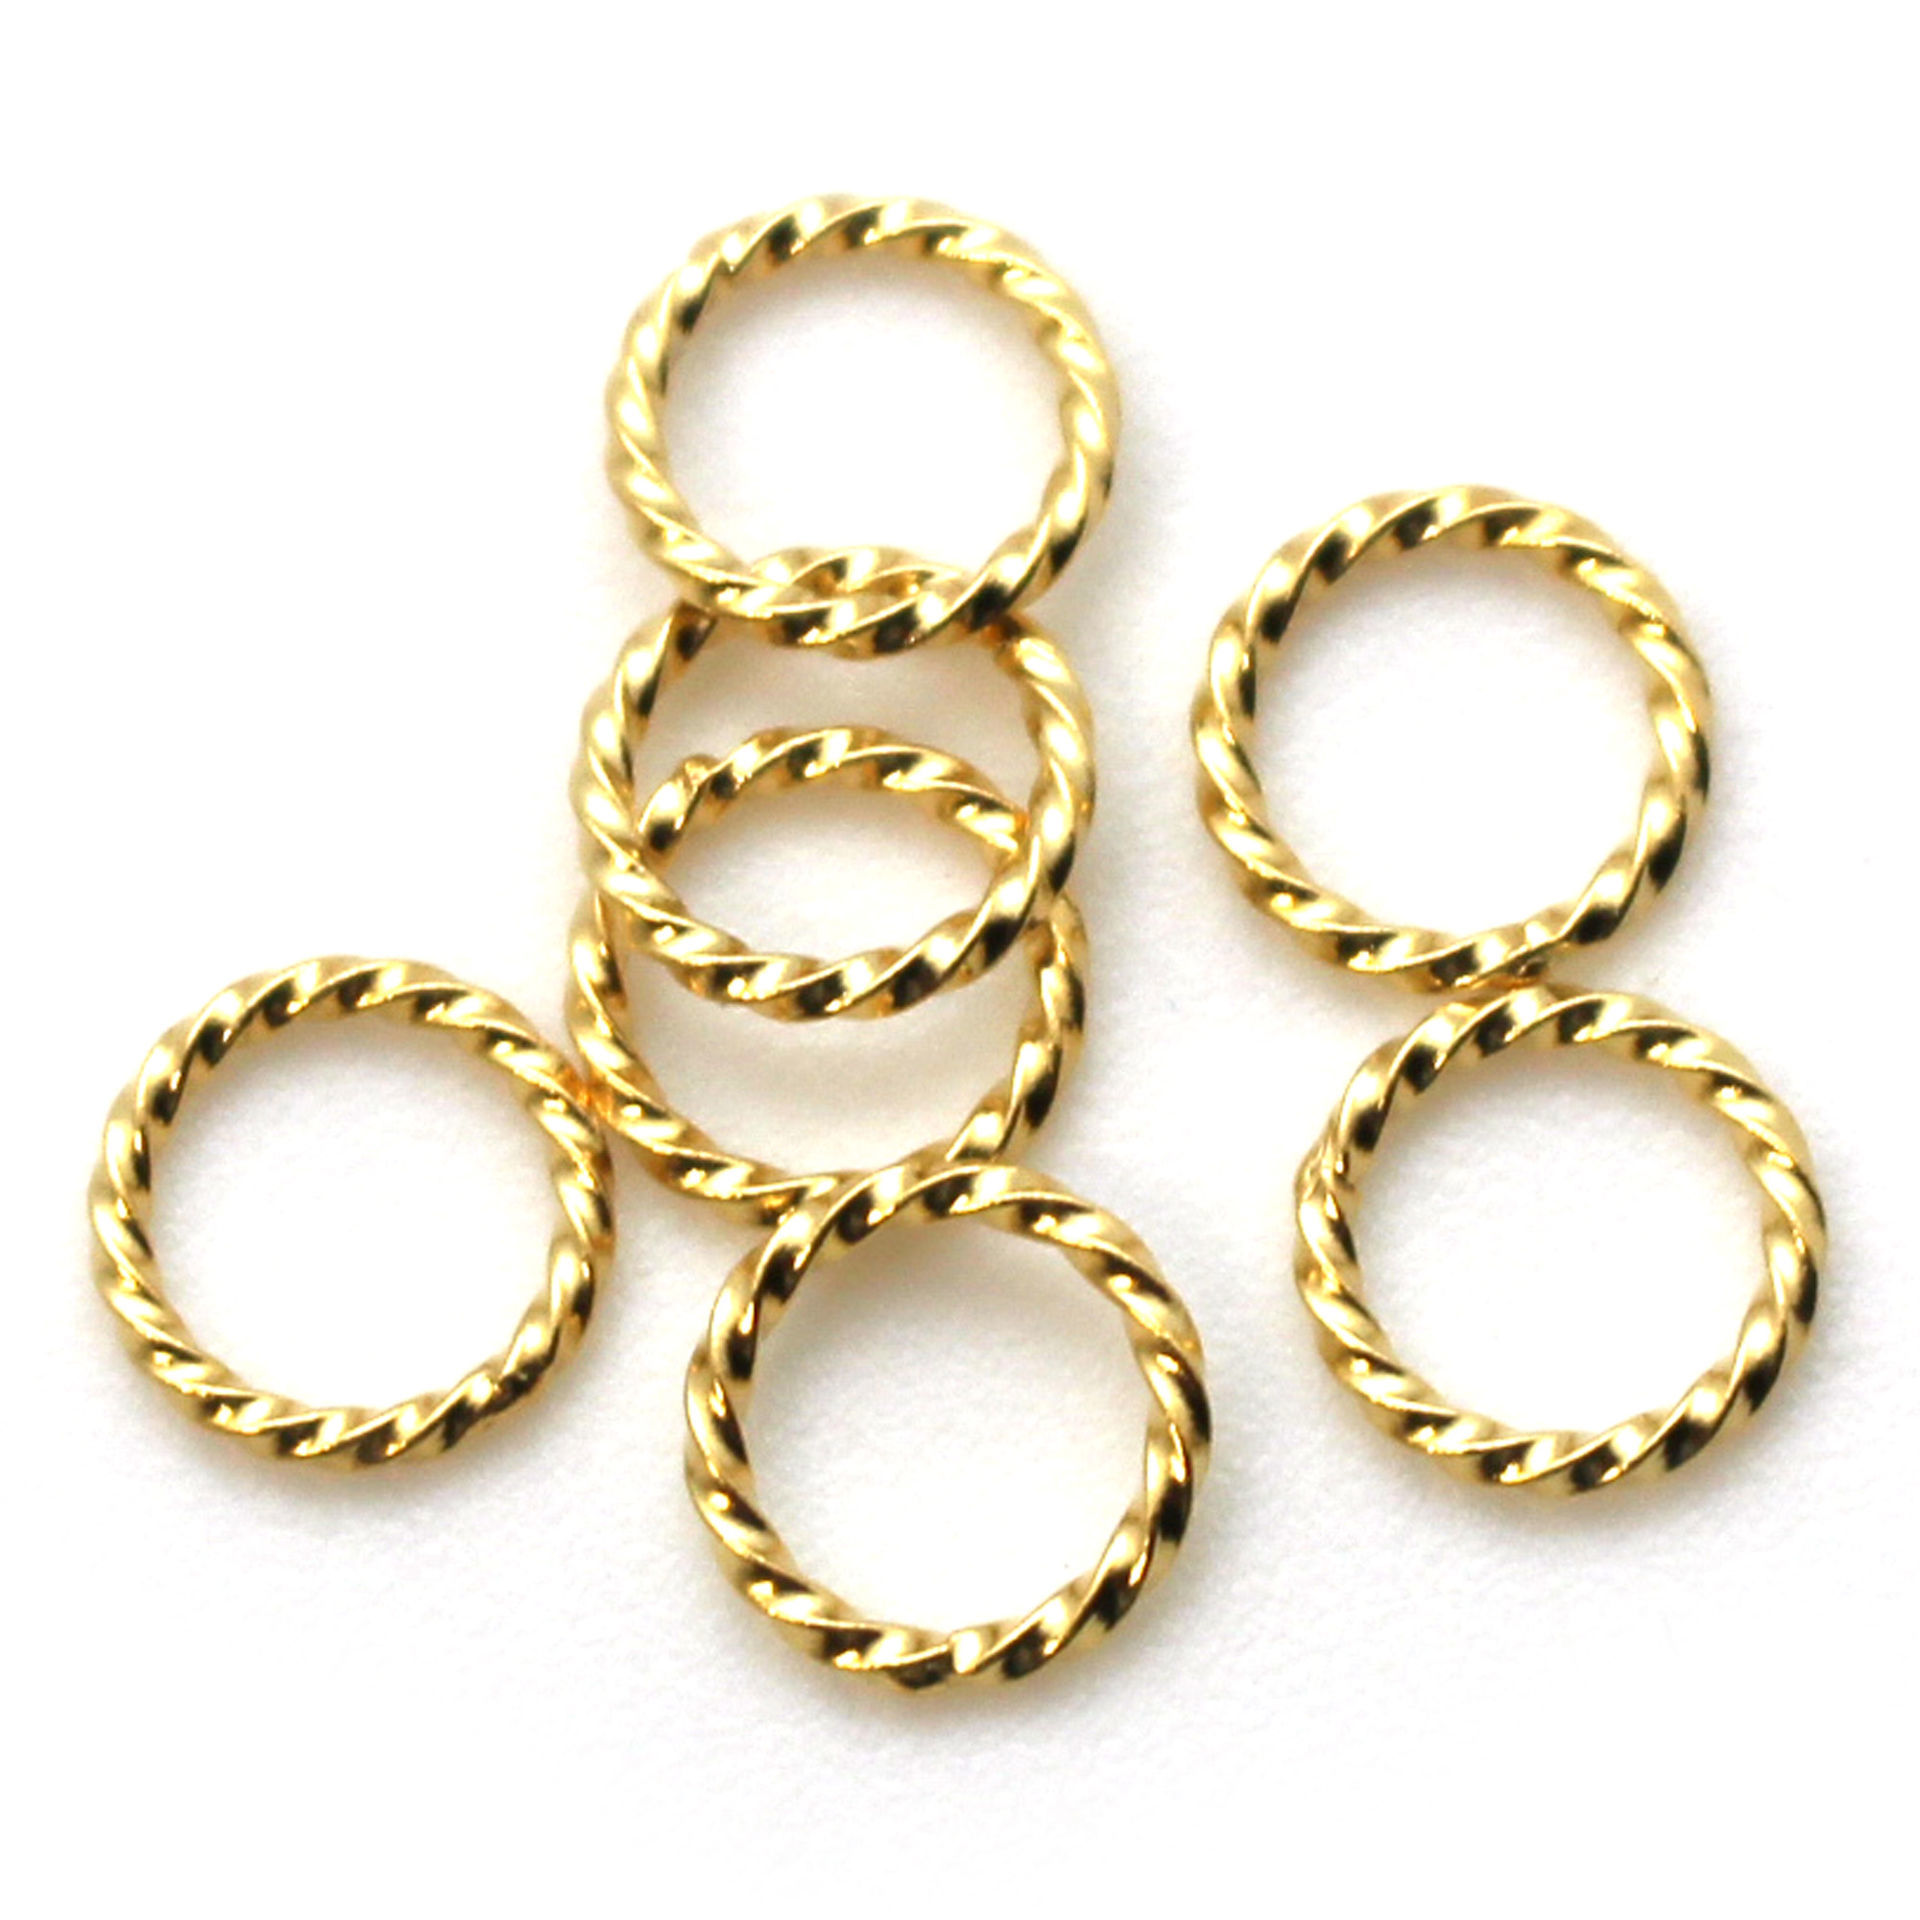 Gold Over Sterling Silver Closed Jump Rings - Twisted Circle shape 18ga 1mm thickness - 8mm (10 pcs)